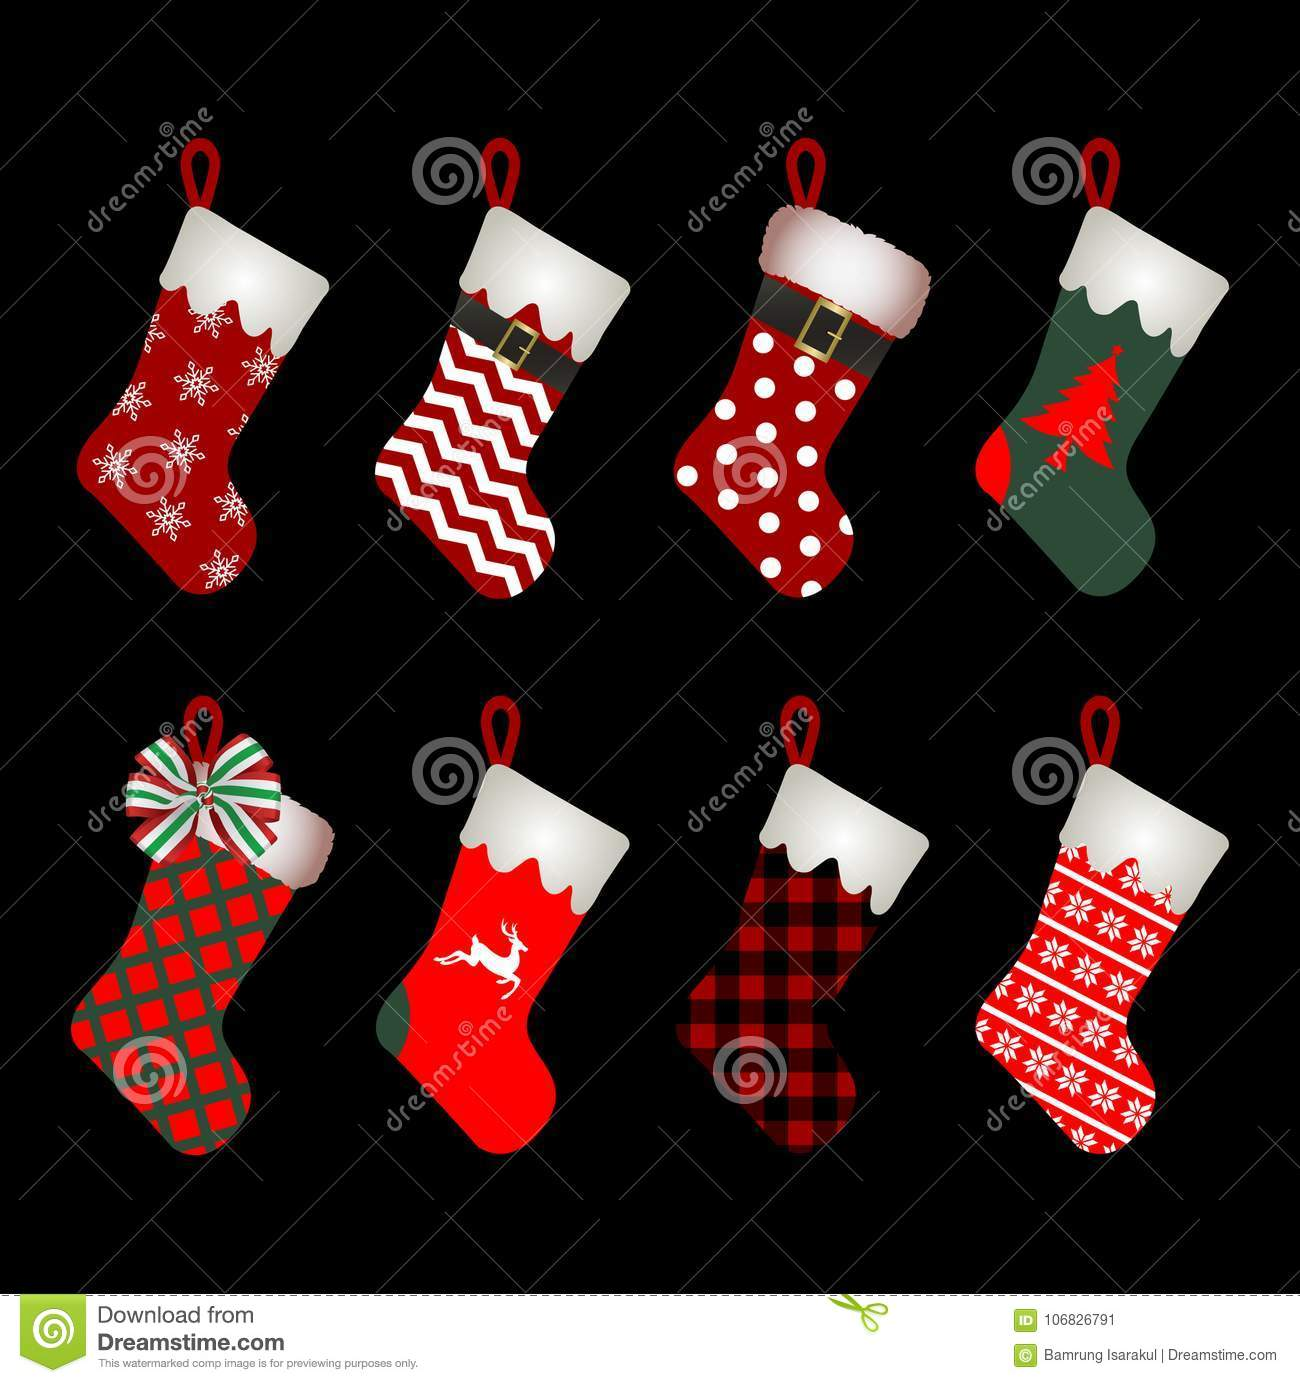 Christmas Sock Icon Set.christmas Socks Vectors.christmas